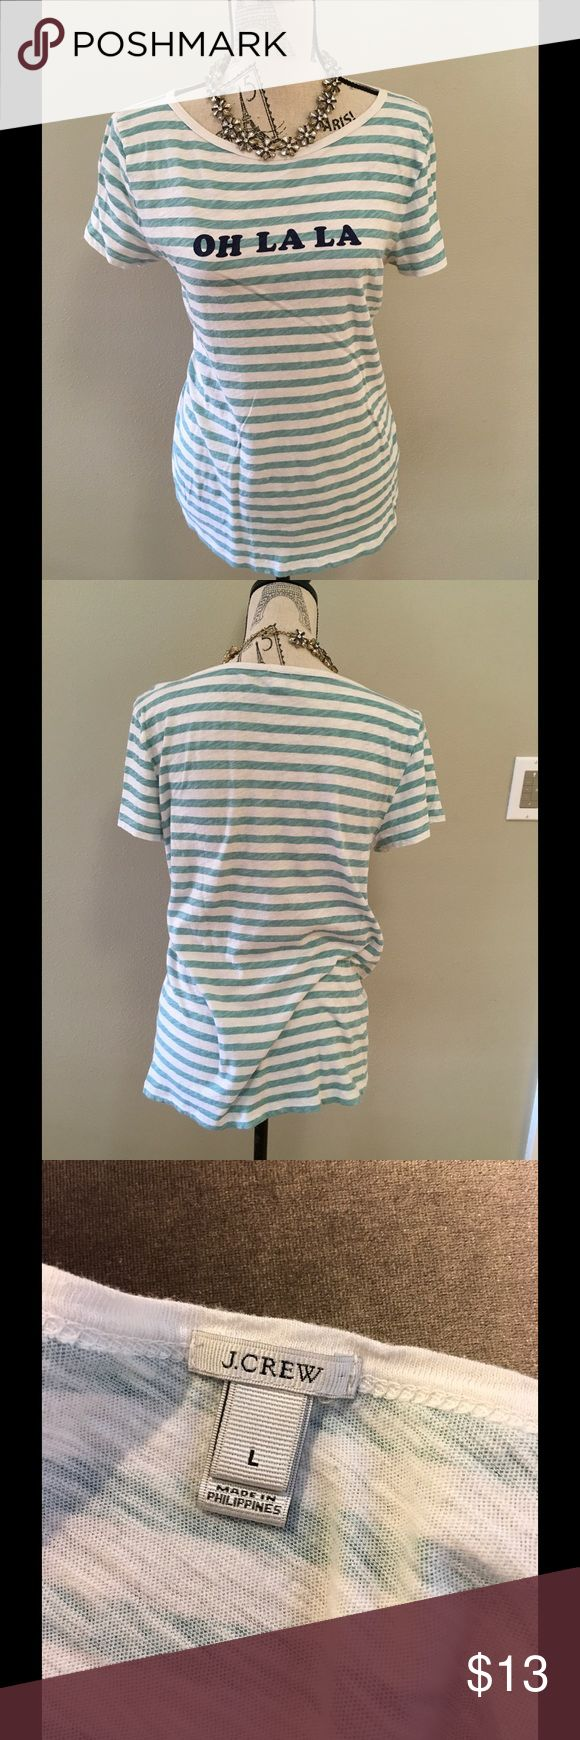 J Crew OH LA LA T-shirt J Crew OH LA LA T-shirt.  Very cute, No stains or snags. Sorry No trades. J Crew Tops Tees - Short Sleeve